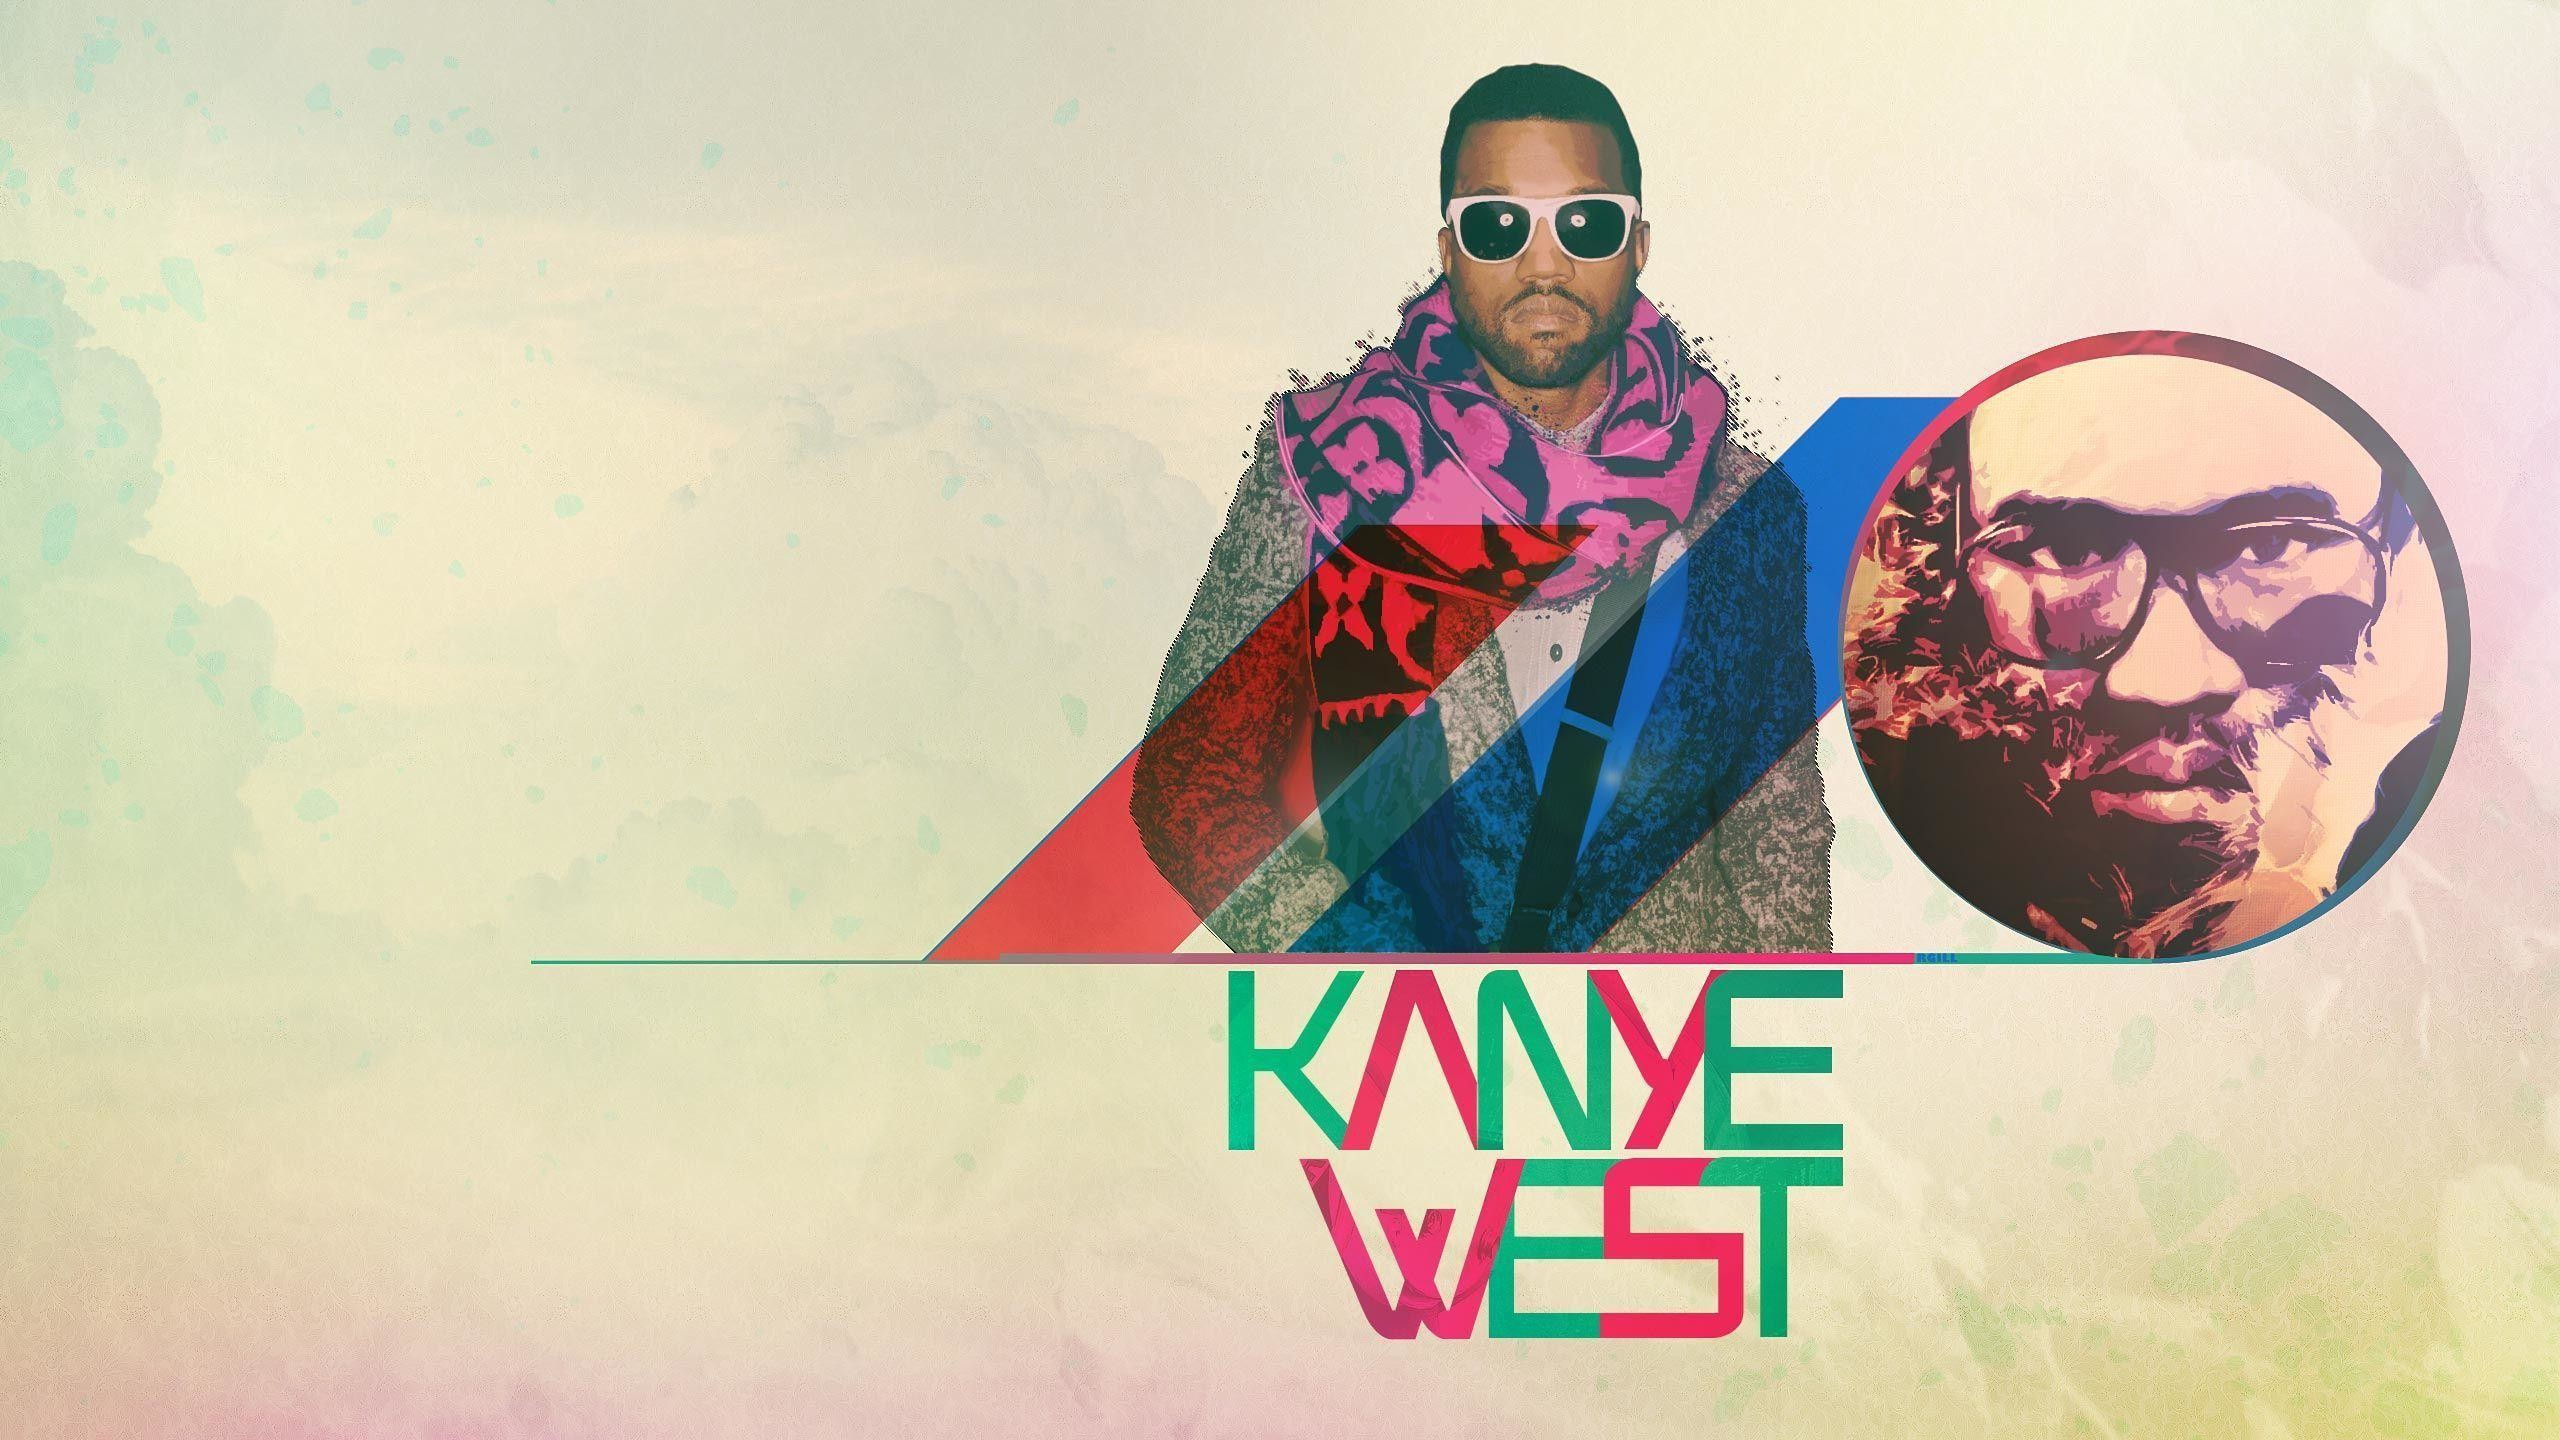 Kanye West Graduation Wallpapers – Wallpaper Cave